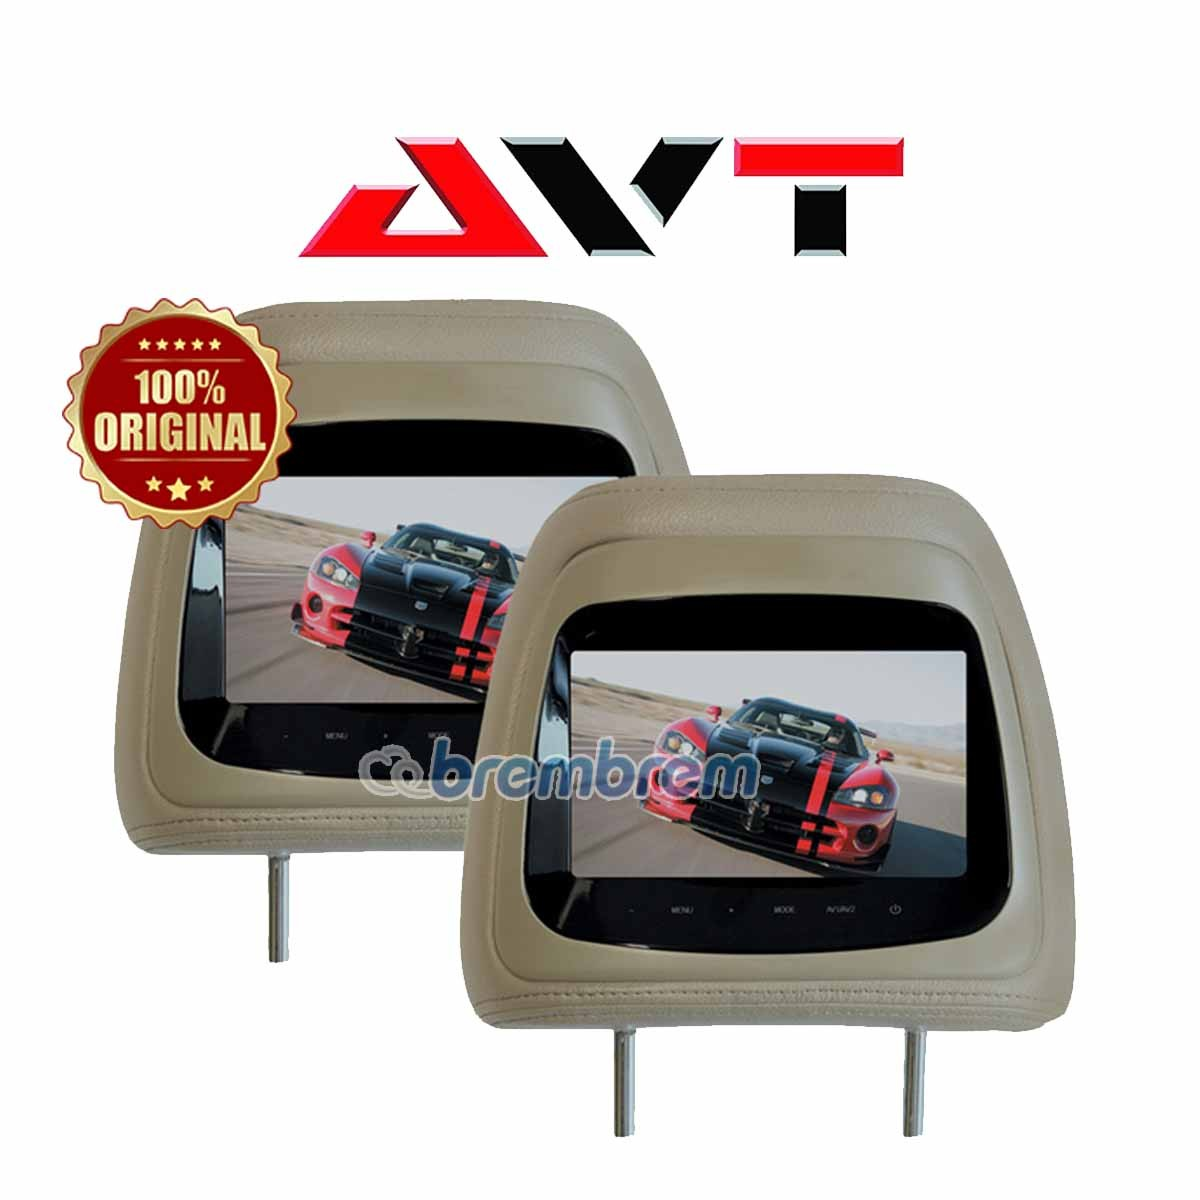 AVT HM 7088 - HEADREST MONITOR